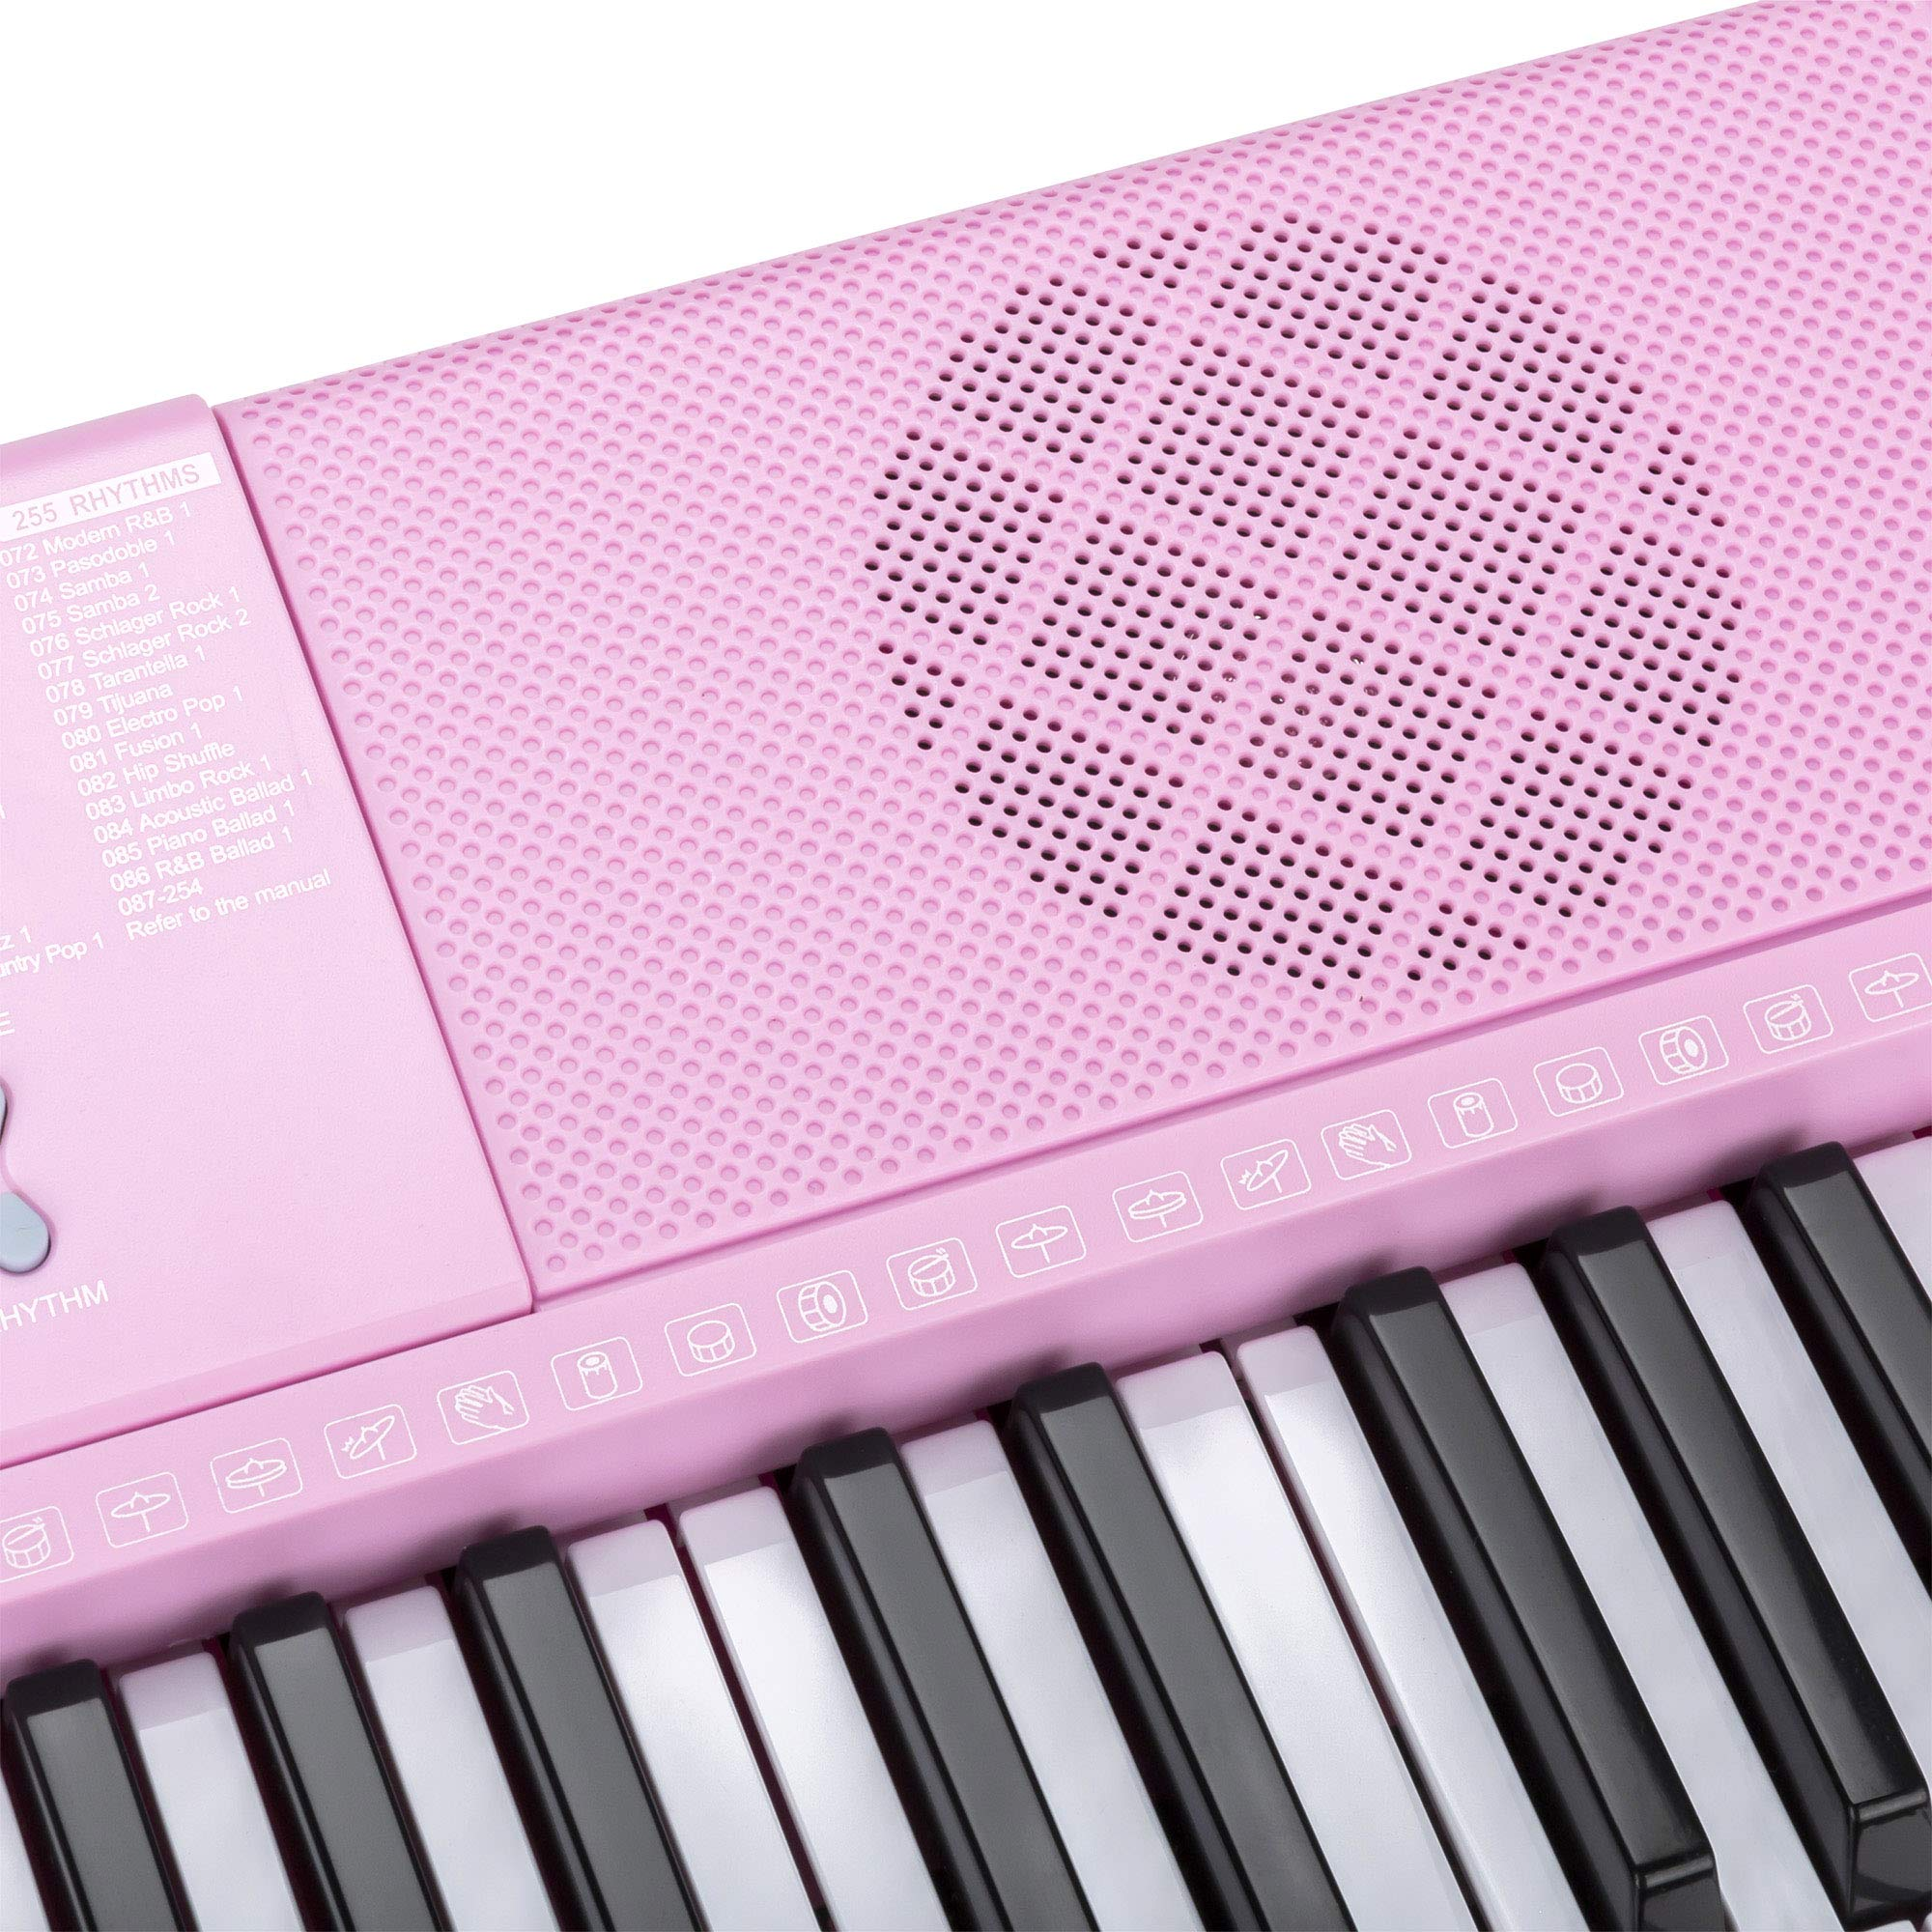 Best Choice Products 61-Key Portable Electronic Keyboard Piano with LED Screen, Record & Playback Function, Microphone, Headphone Jack (Pink) by Best Choice Products (Image #4)